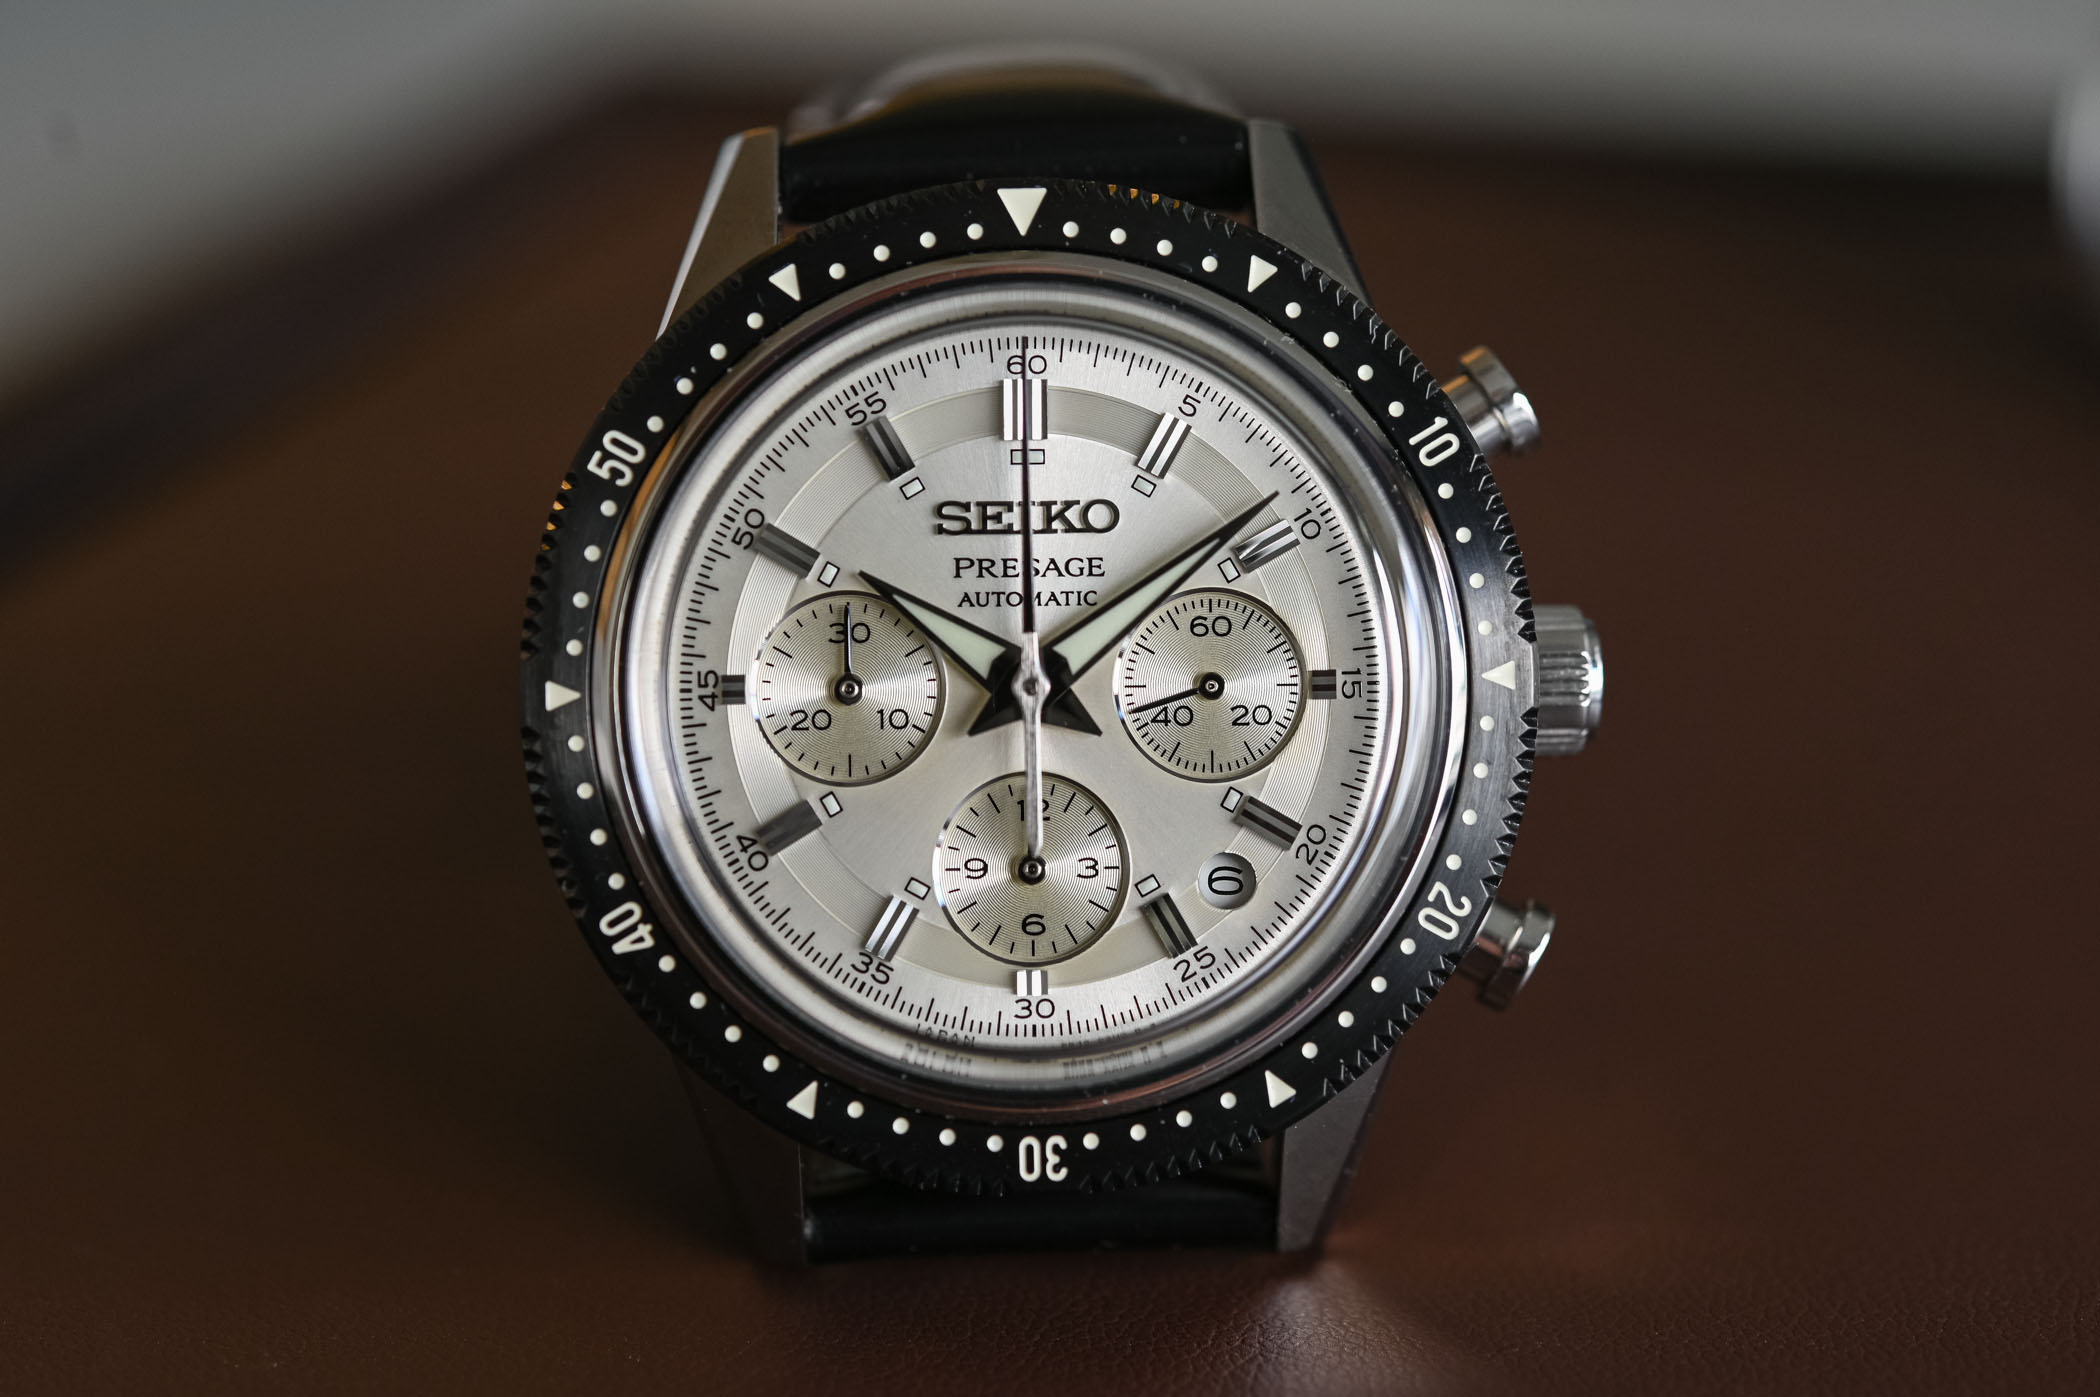 Seiko Presage Chronograph 55th Anniversary Limited Edition SRQ031